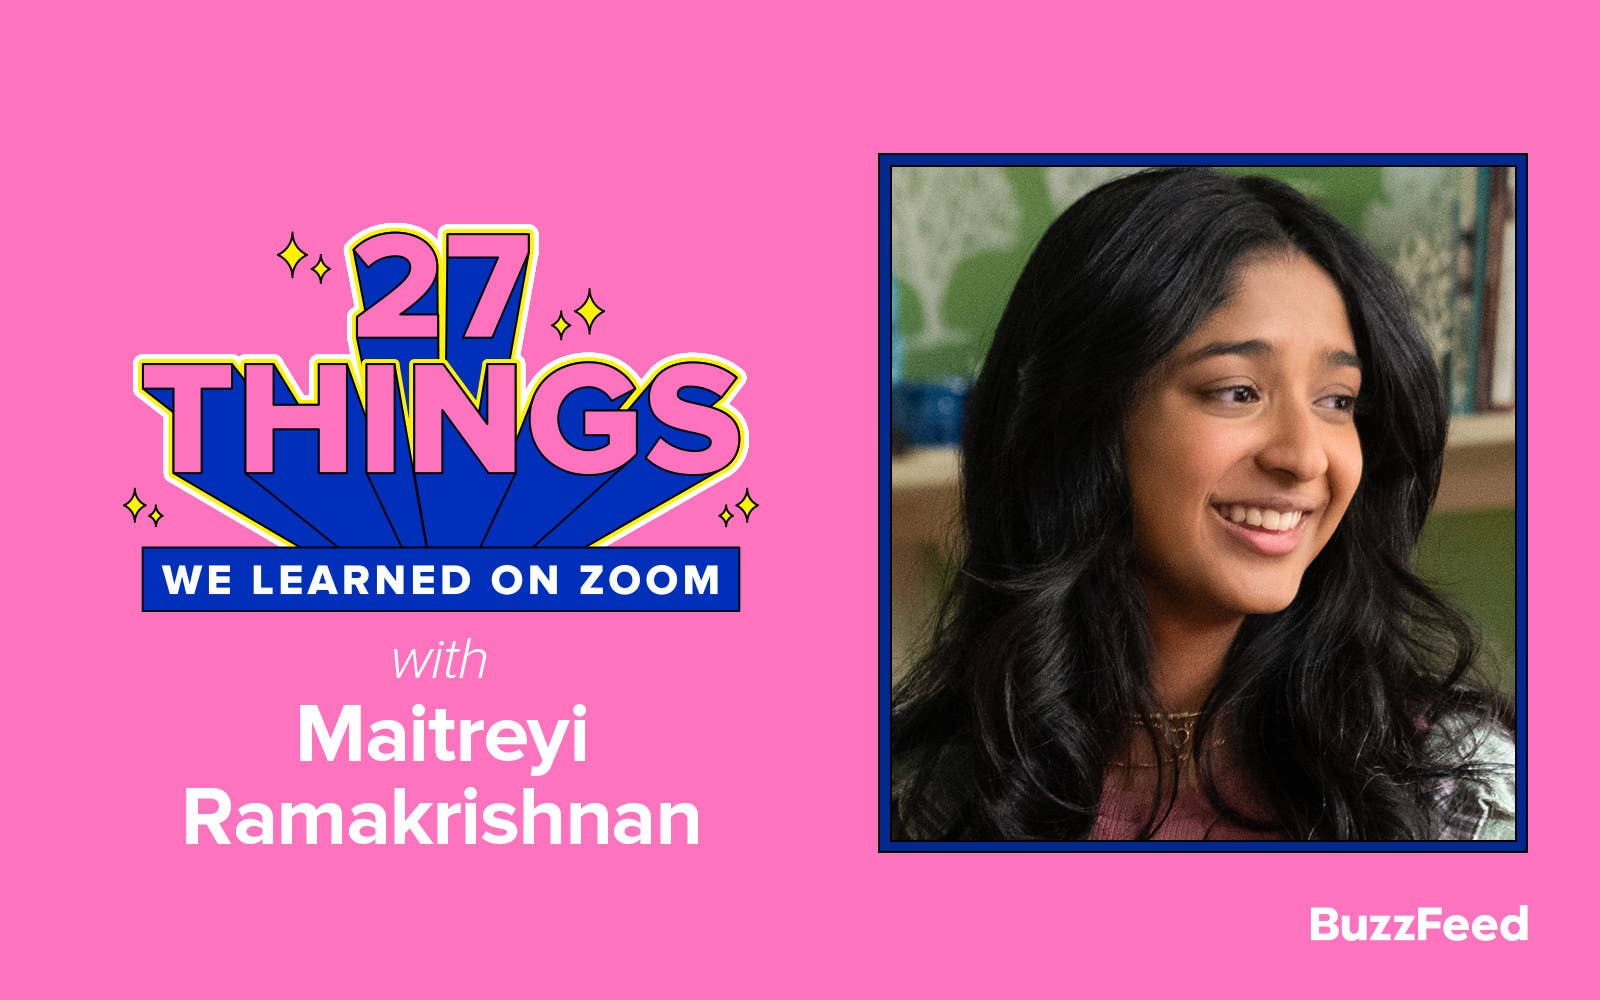 """Header that says """"27 Things We Learned on Zoom With Maitreyi Ramakrishnan"""""""